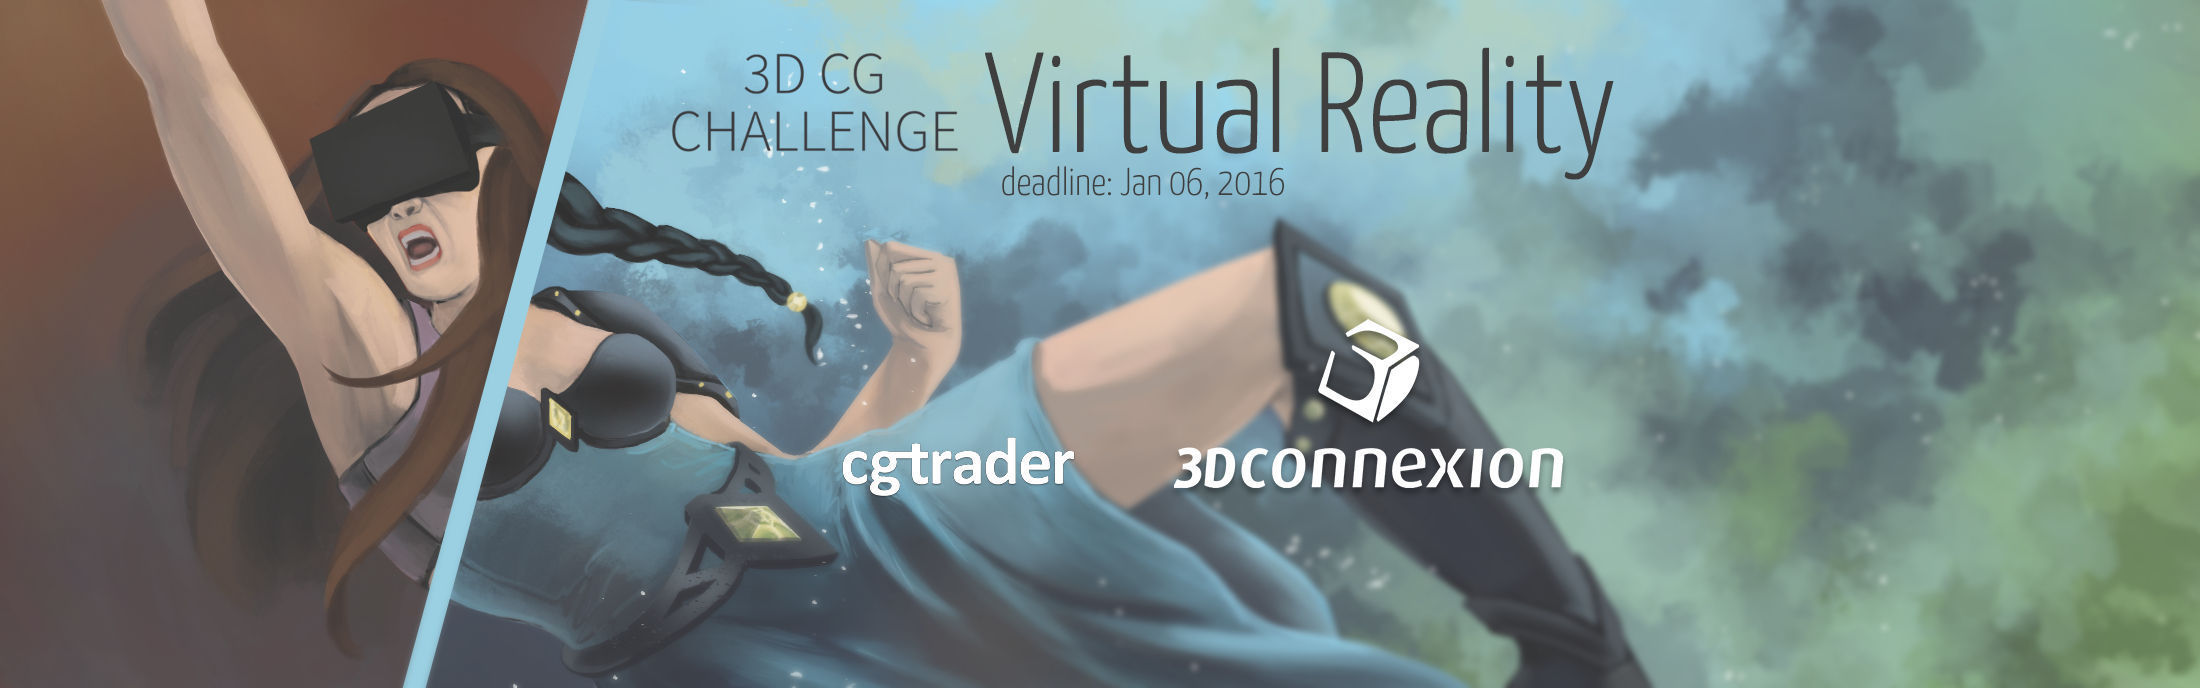 Virtual Reality Environment Challenge